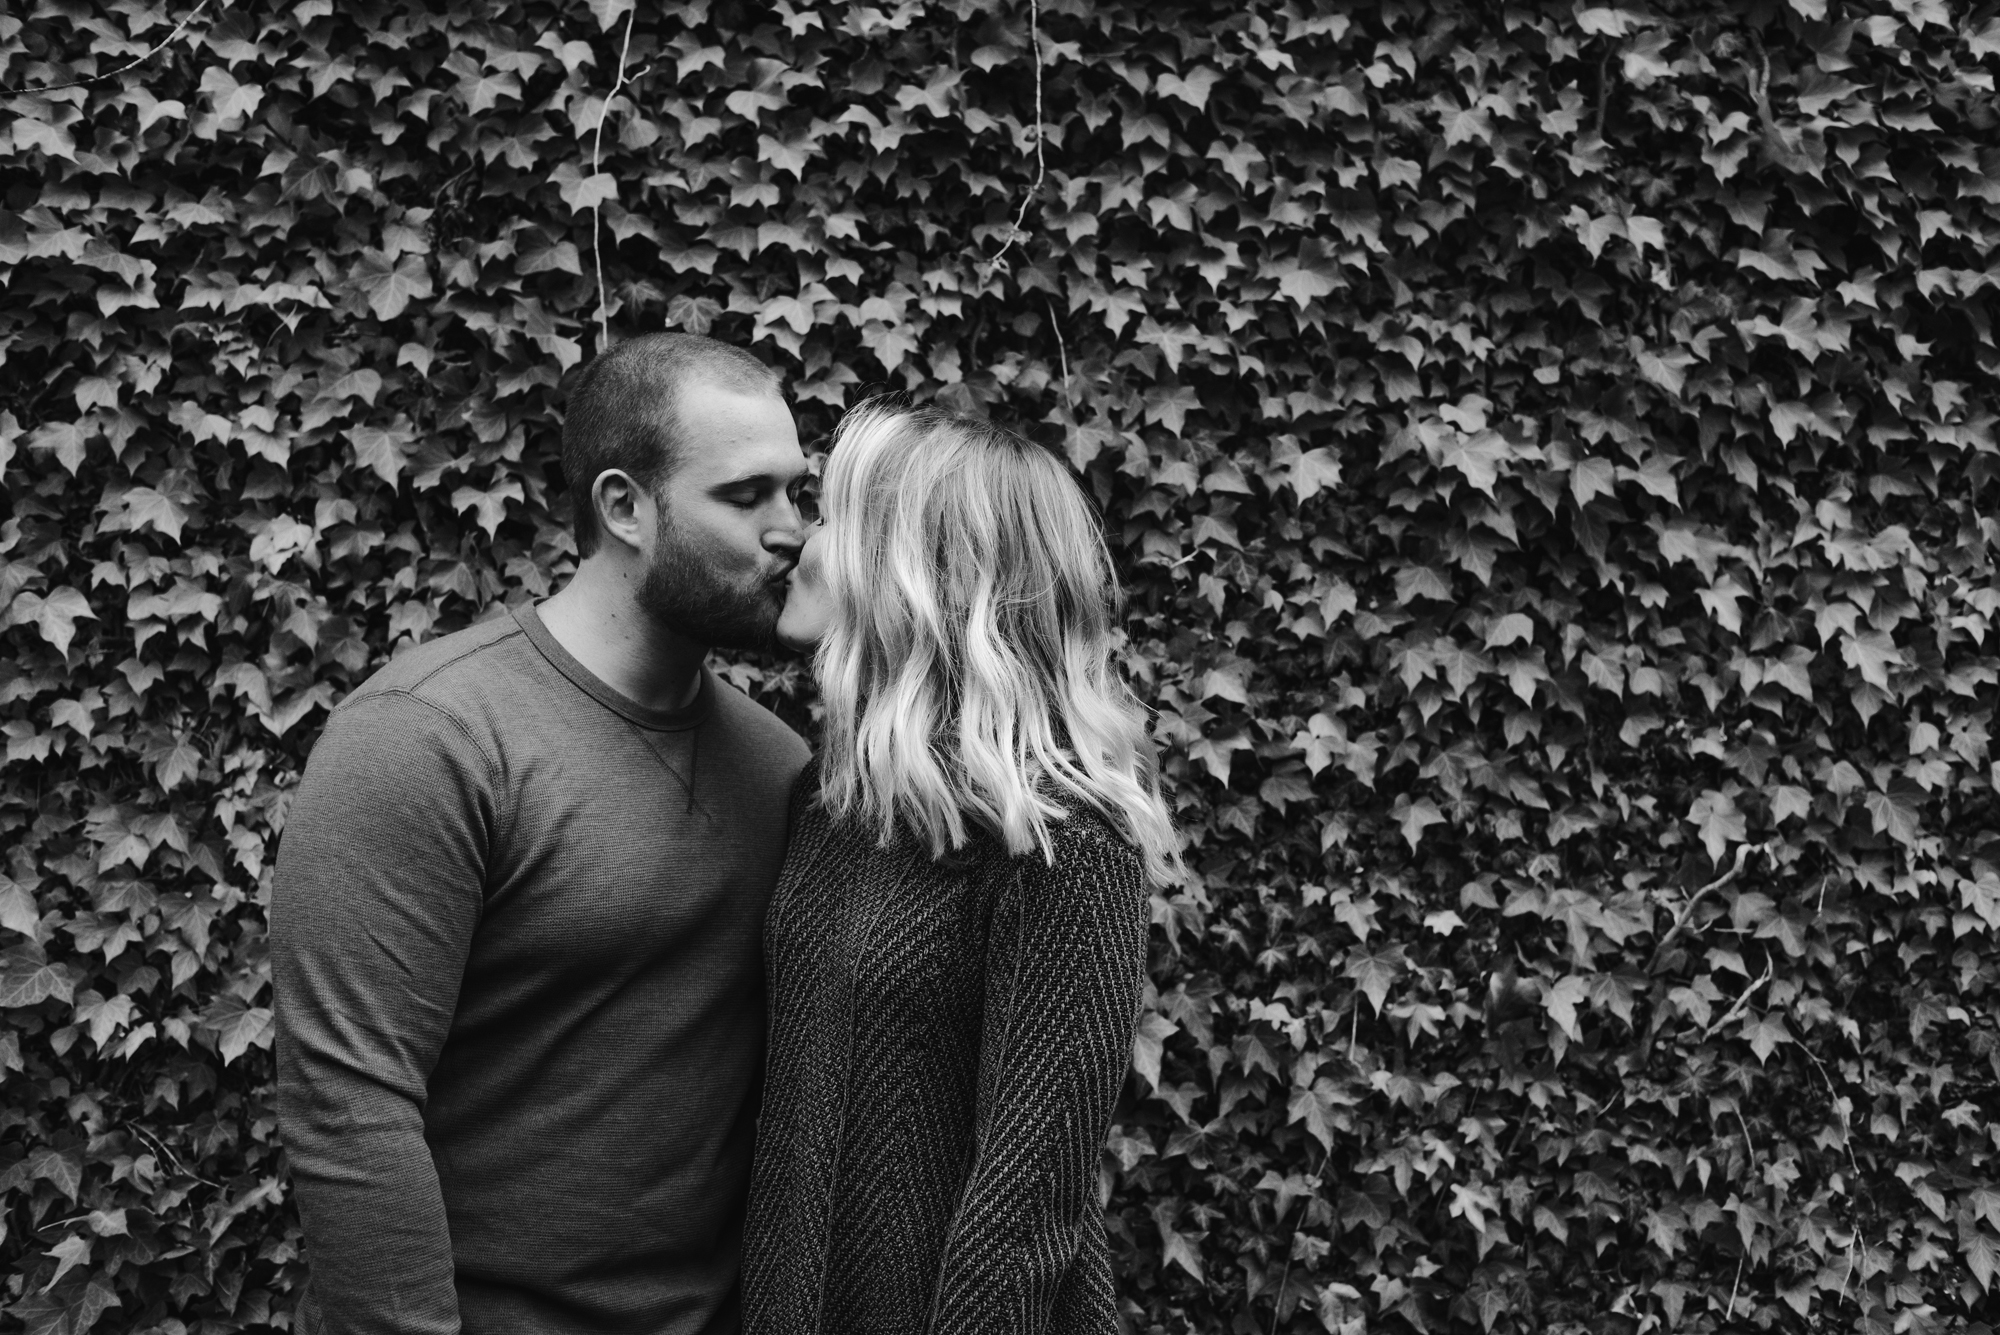 south-bend-indiana-fall-engagement-photographer-sydney-marie (75).jpg